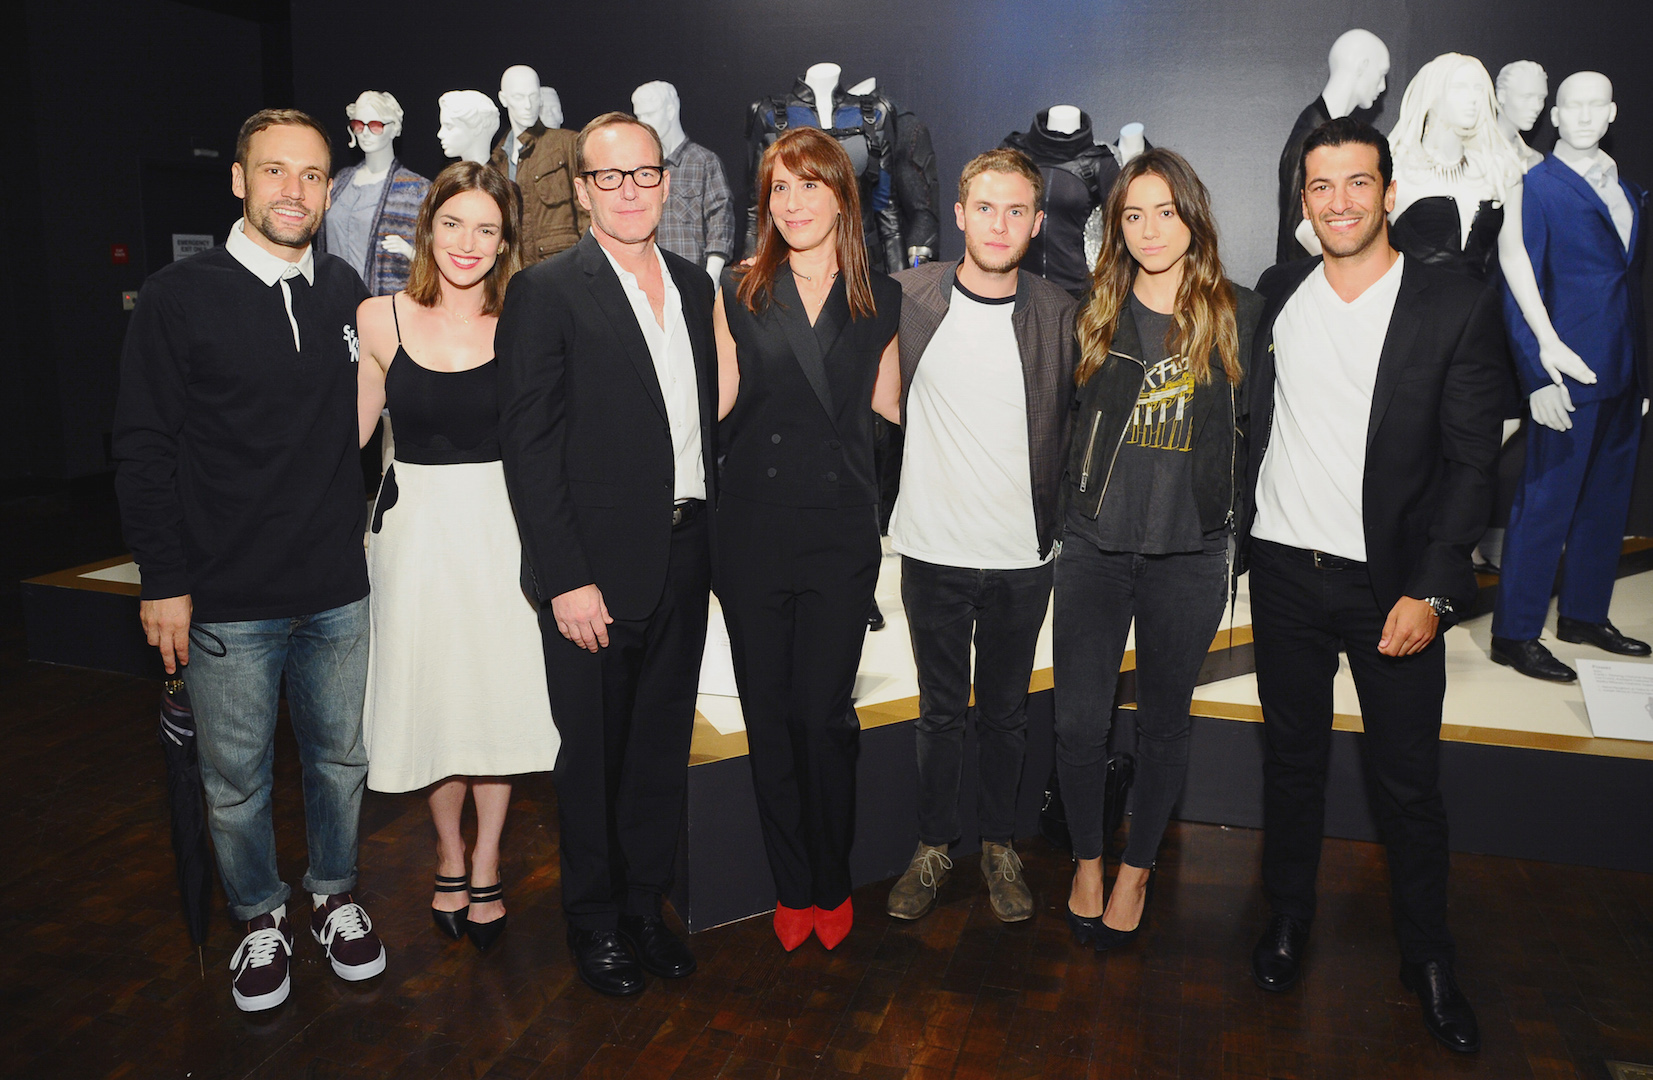 "Nick Blood, from left, Elizabeth Henstridge, Clark Gregg, Ann Foley, costume designer of ""Marvel's Agents of S.H.I.E.L.D"",  Iain De Caestecker, Chloe Bennet and  Simon Kassianides seen at The 9th Annual Outstanding Art of Television Costume Design Exhibition opening at the FIDM Museum & Galleries on the Park on Saturday, July 18, 2015, in Los Angeles. The Television Academy and FIDM Museum honored this year's Emmy(R) Award winners in Outstanding Costume Design at the opening reception for this annual special exhibition. (Photo by Vince Bucci/Invision for the Television Academy/AP Images)"